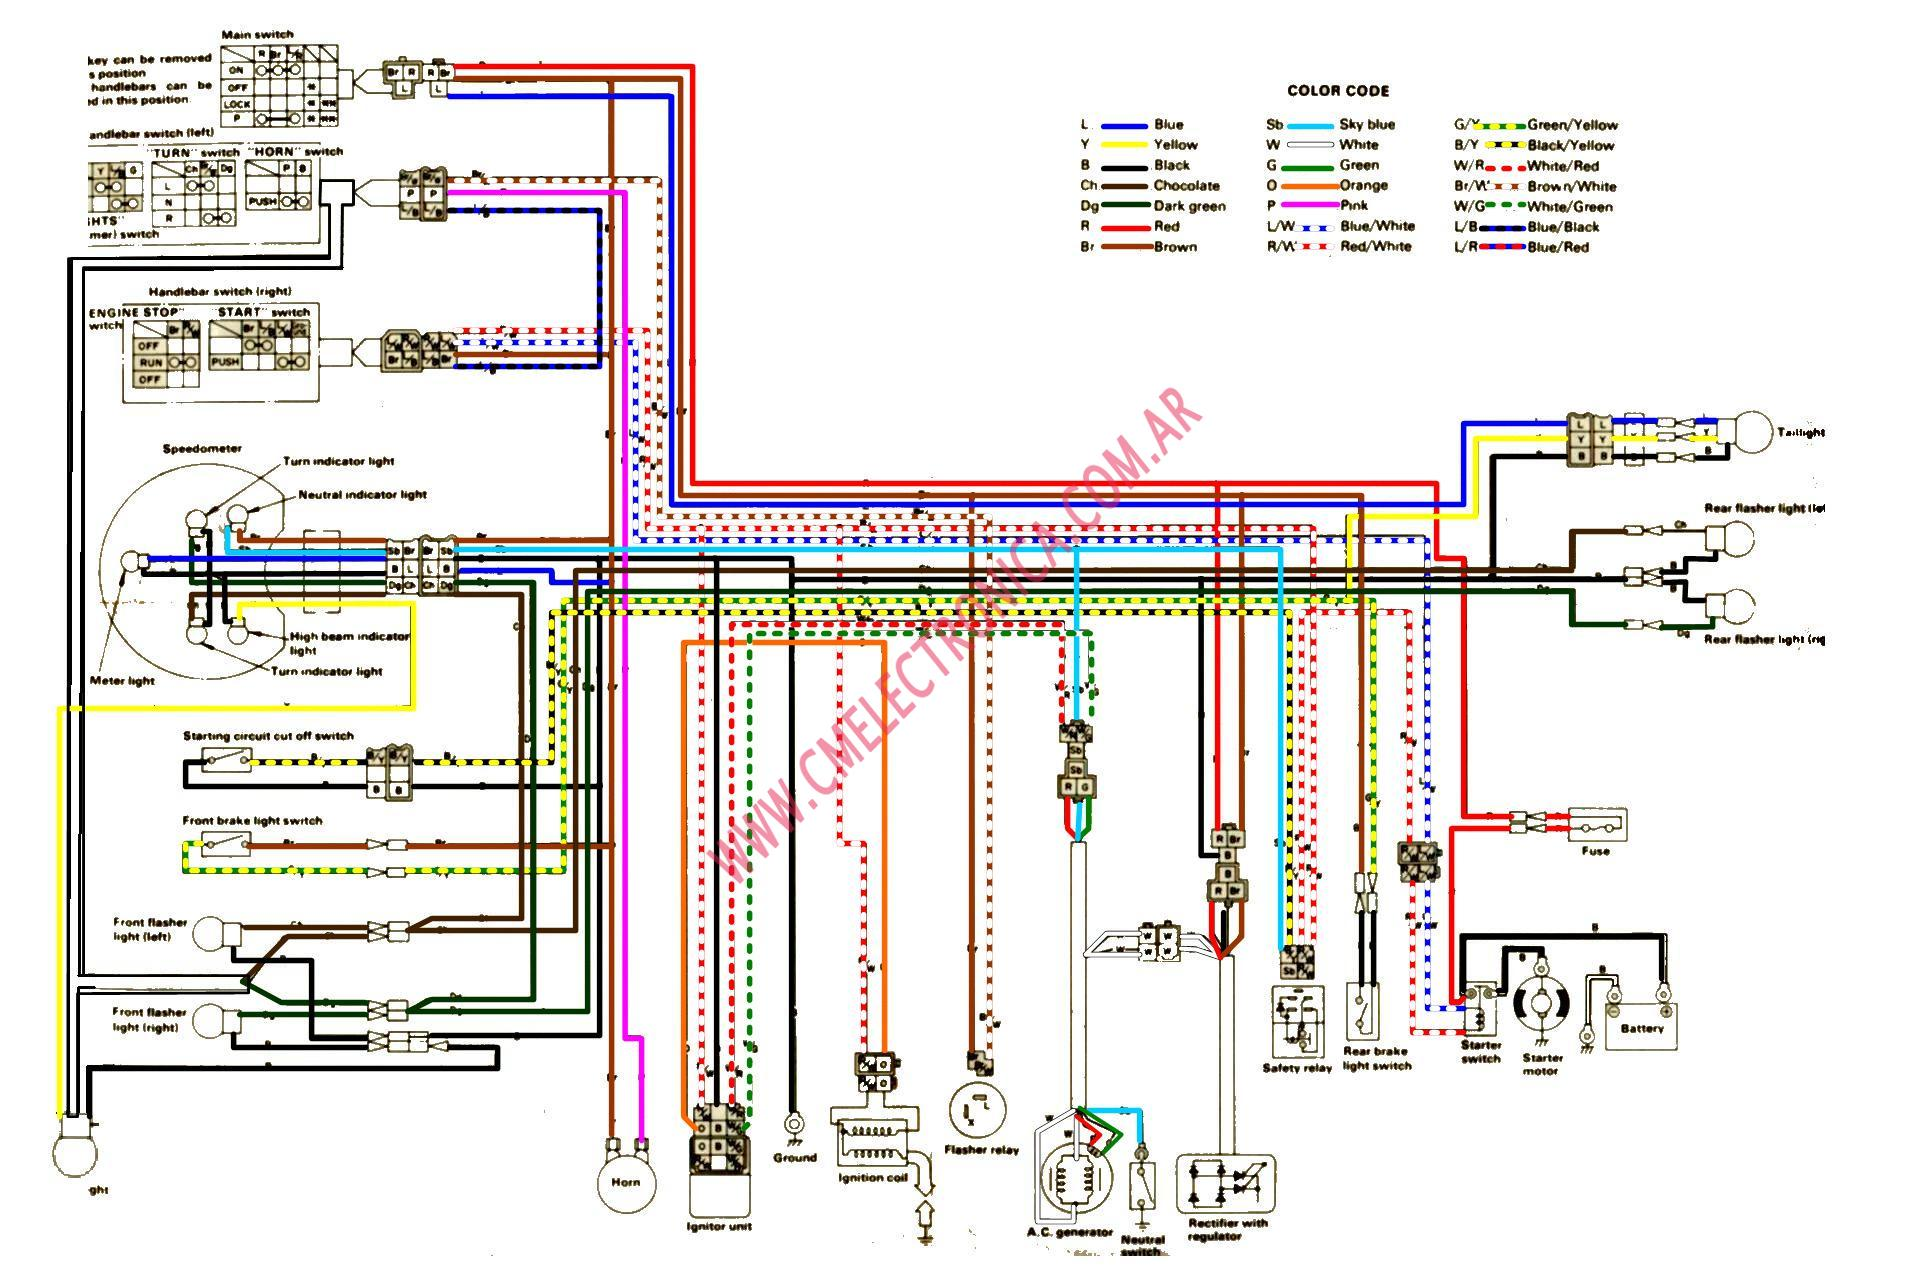 hight resolution of yamaha sr500 wiring diagram wiring diagram page wiring diagram yamaha sr 500 wiring diagram yamaha sr 500